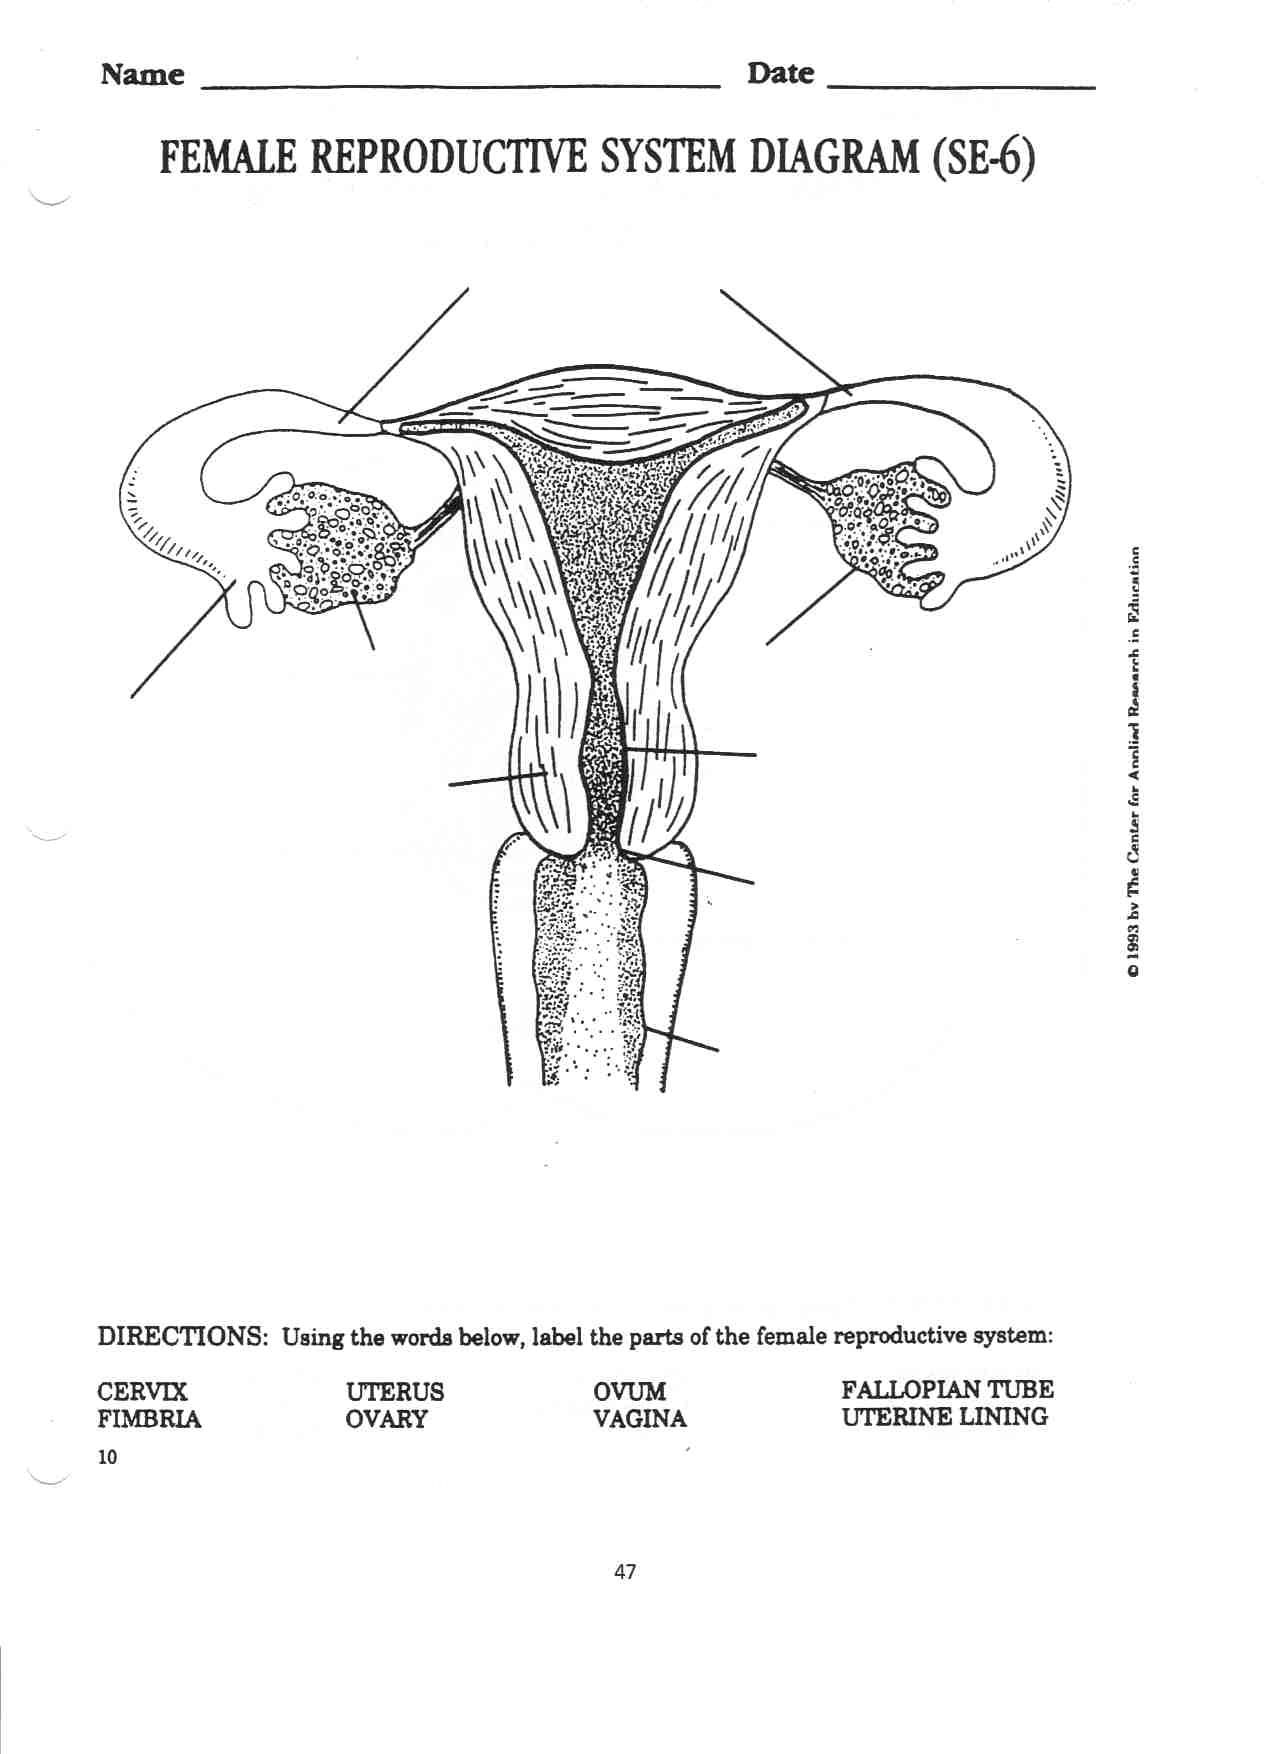 Female Reproductive System Internal Jpg 1 275 1 754 Pixels Reproductive System Female Reproductive System Human Body Anatomy